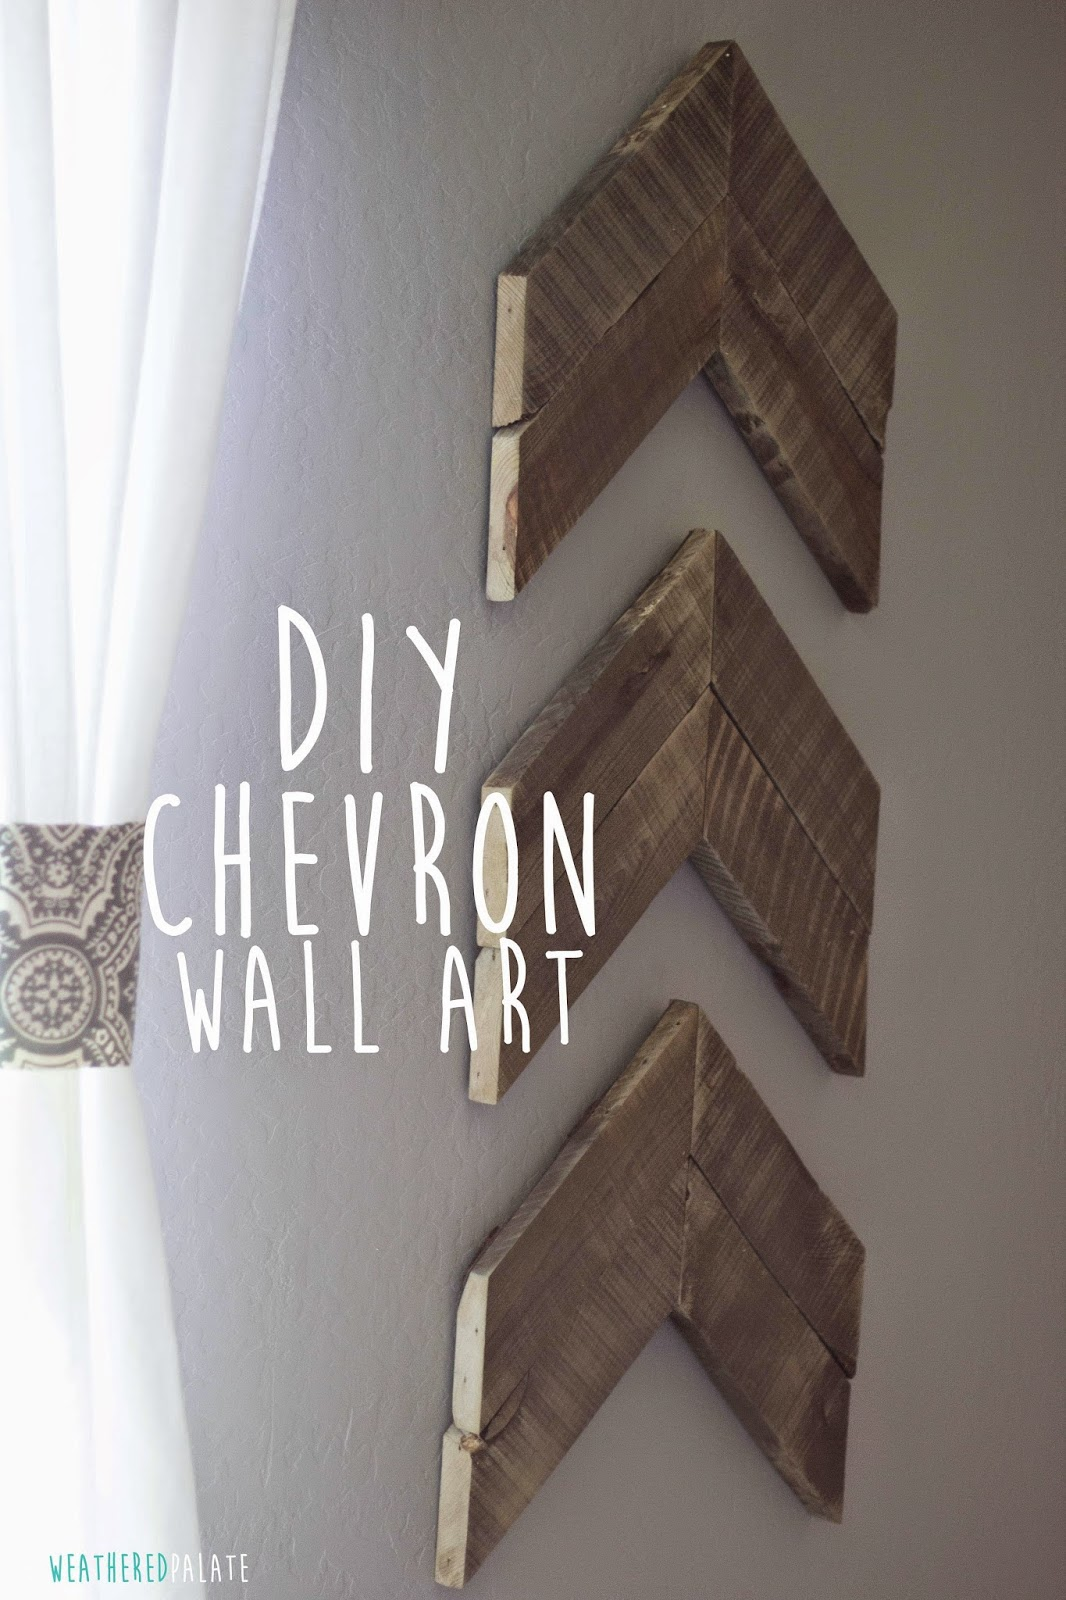 http://www.theweatheredpalate.com/2014/08/diy-chevron-wall-art.html